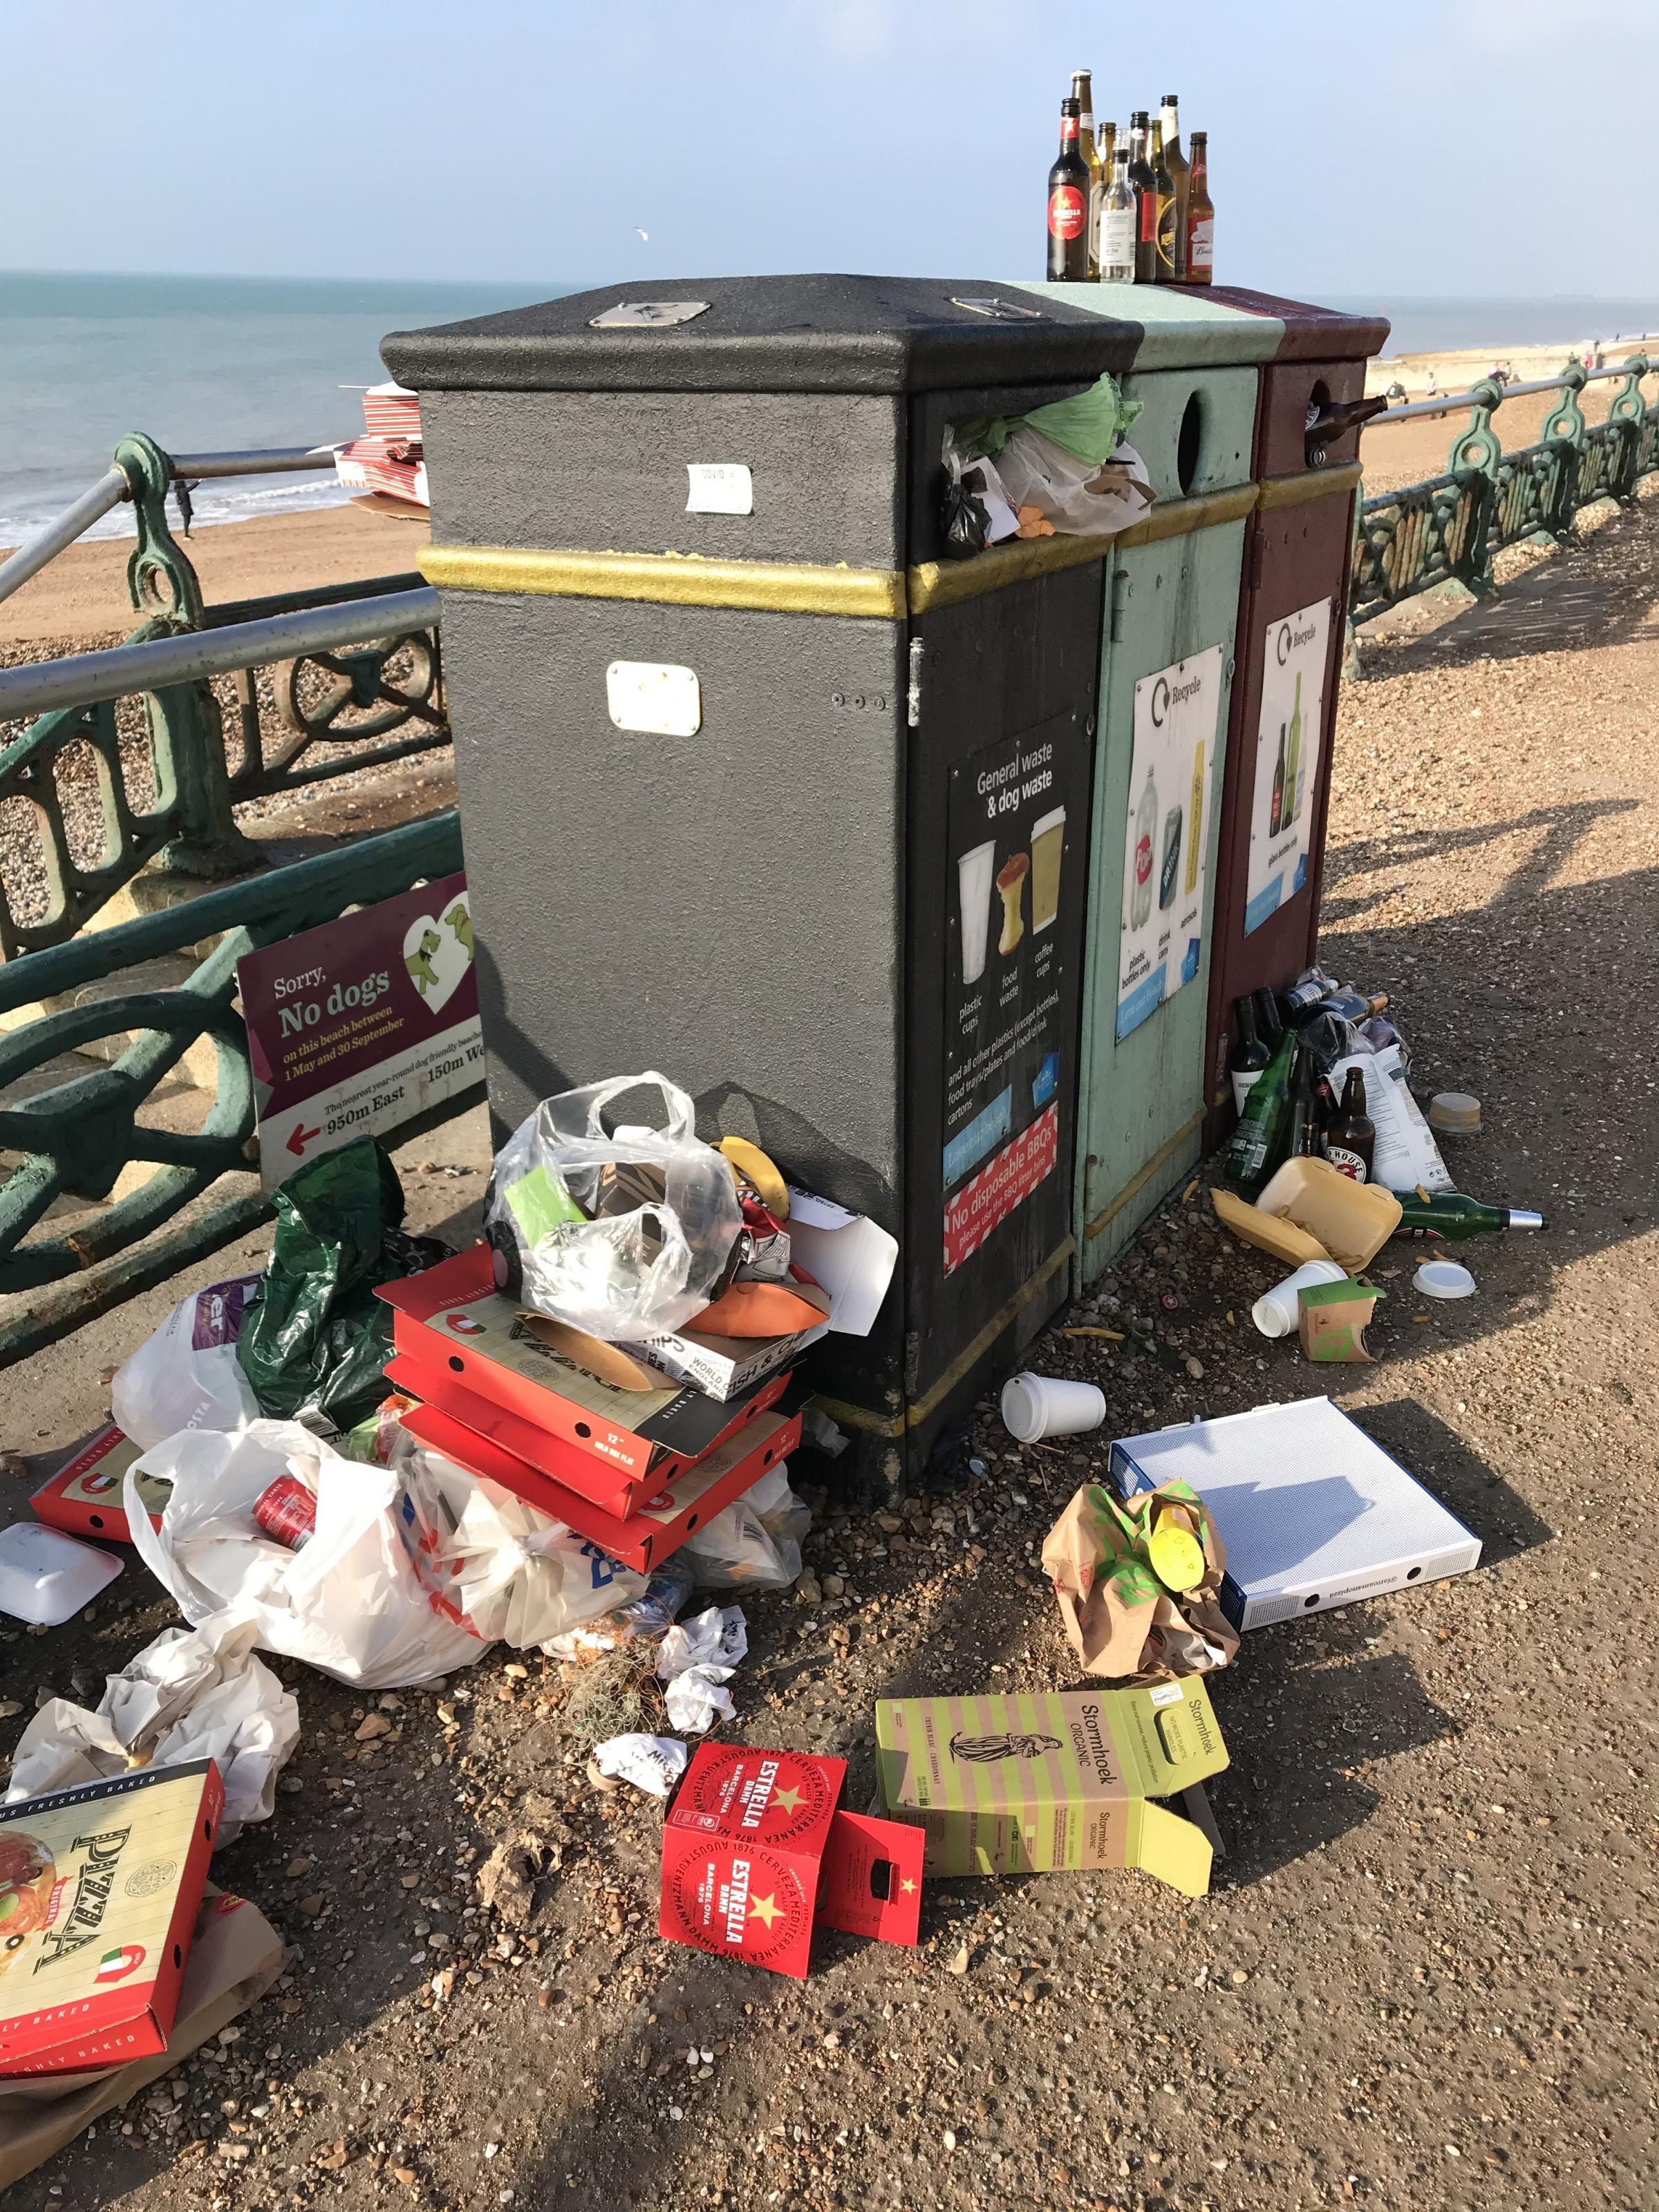 Bins were left overflowing as thousands descended on Brighton and Hove seafront during a warm weekend